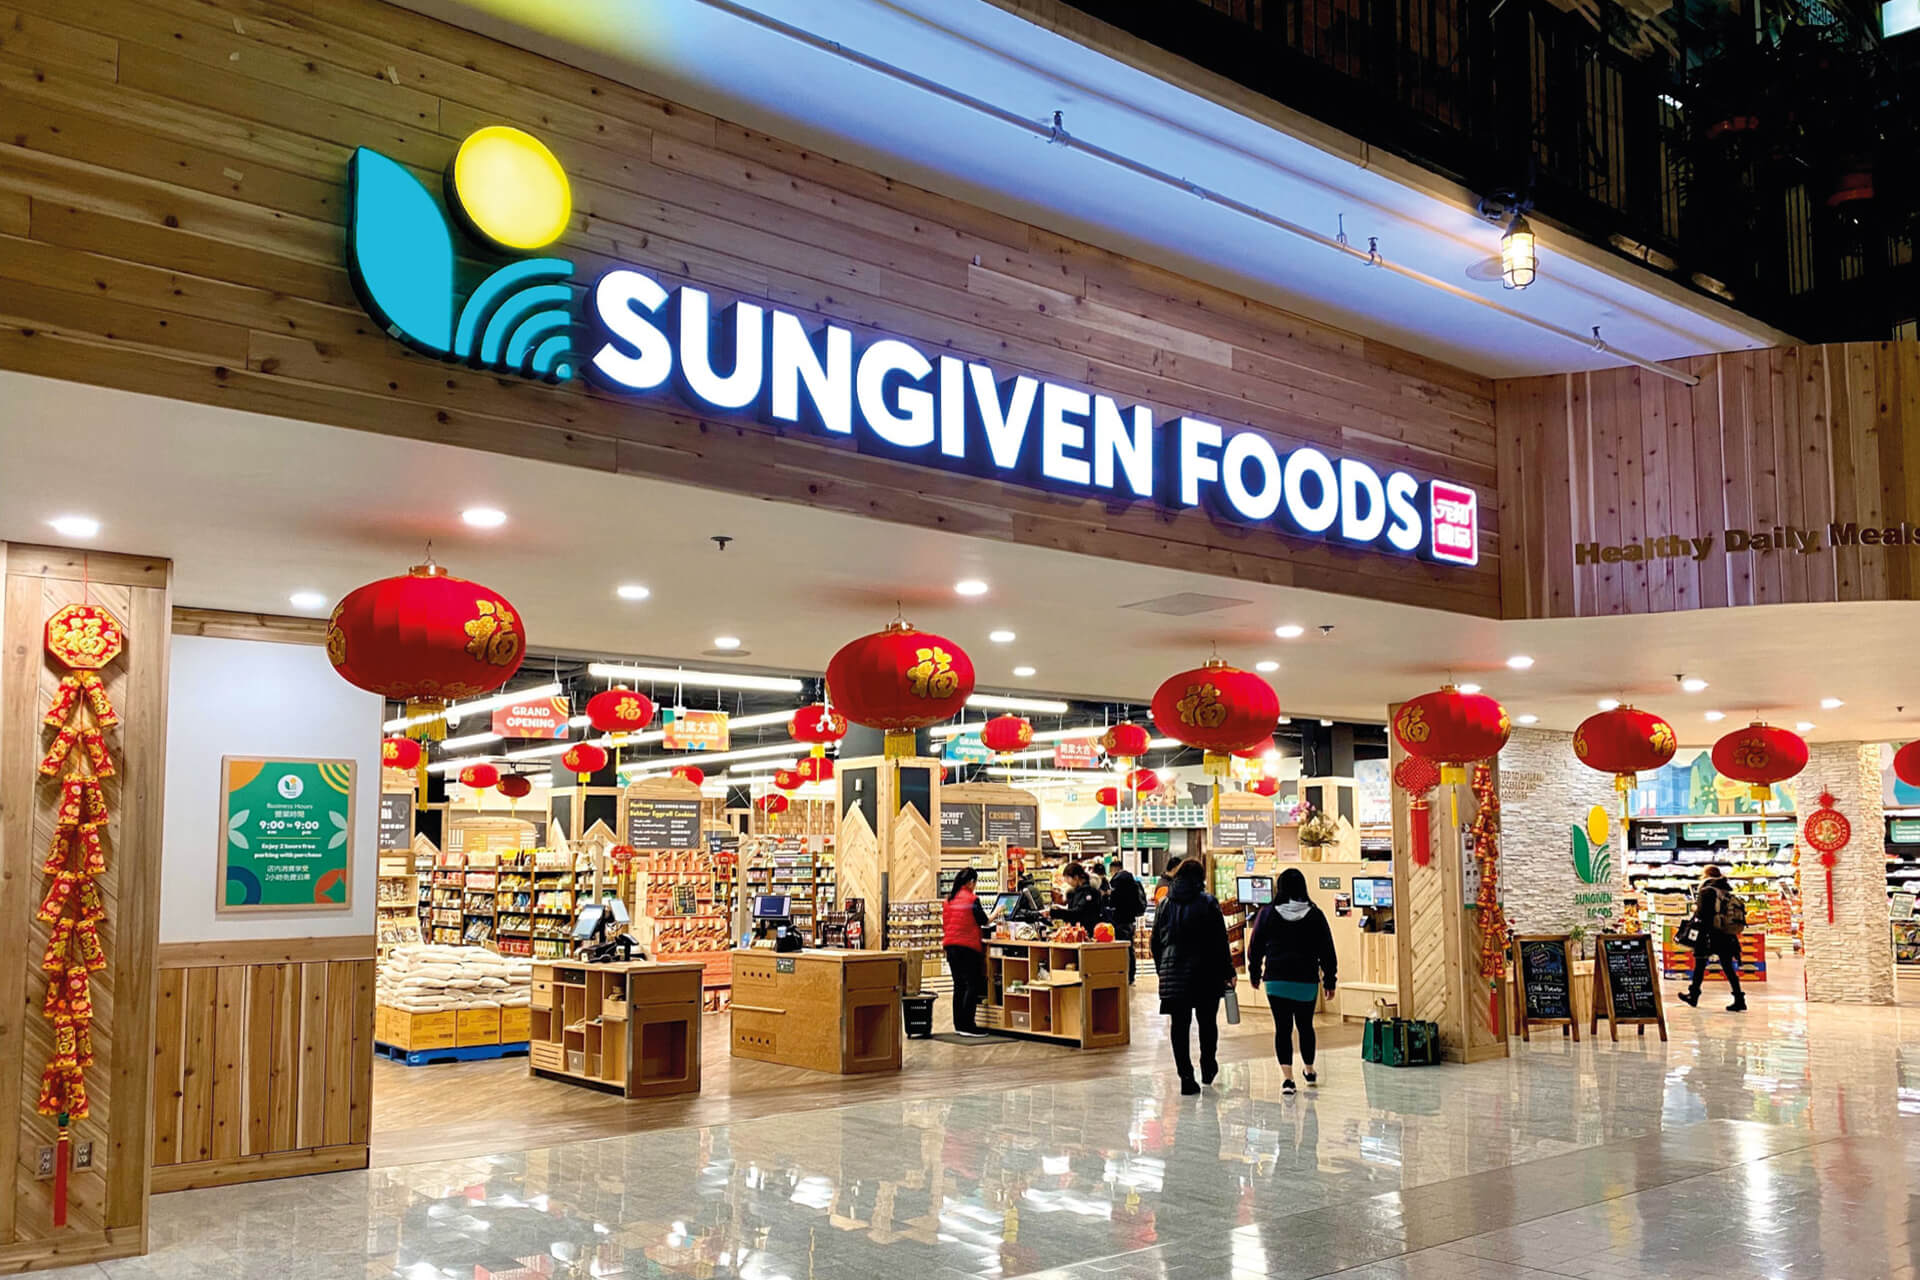 Lee & Associates Vancouver Represents Sungiven Foods in Metro Vancouver Expansion